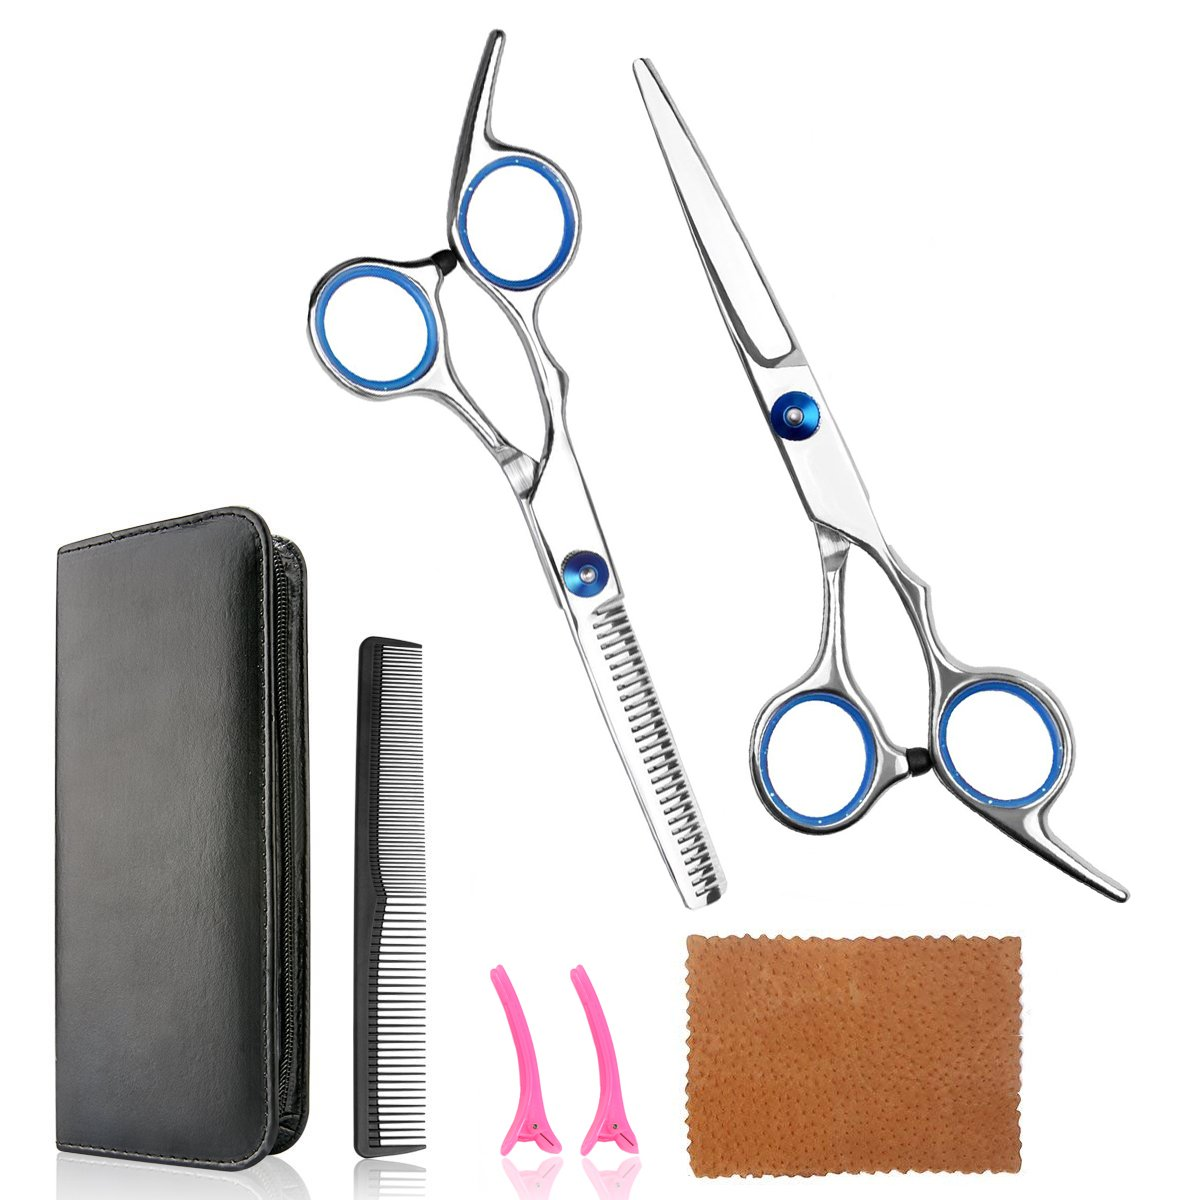 Hair Cutting Scissors Barber Shears Set Professional Razor Straight Edge Thinning Texturizing Hair 6.0'' Stainless Steel Scissors Shears Kit Silver (Blue Ring)